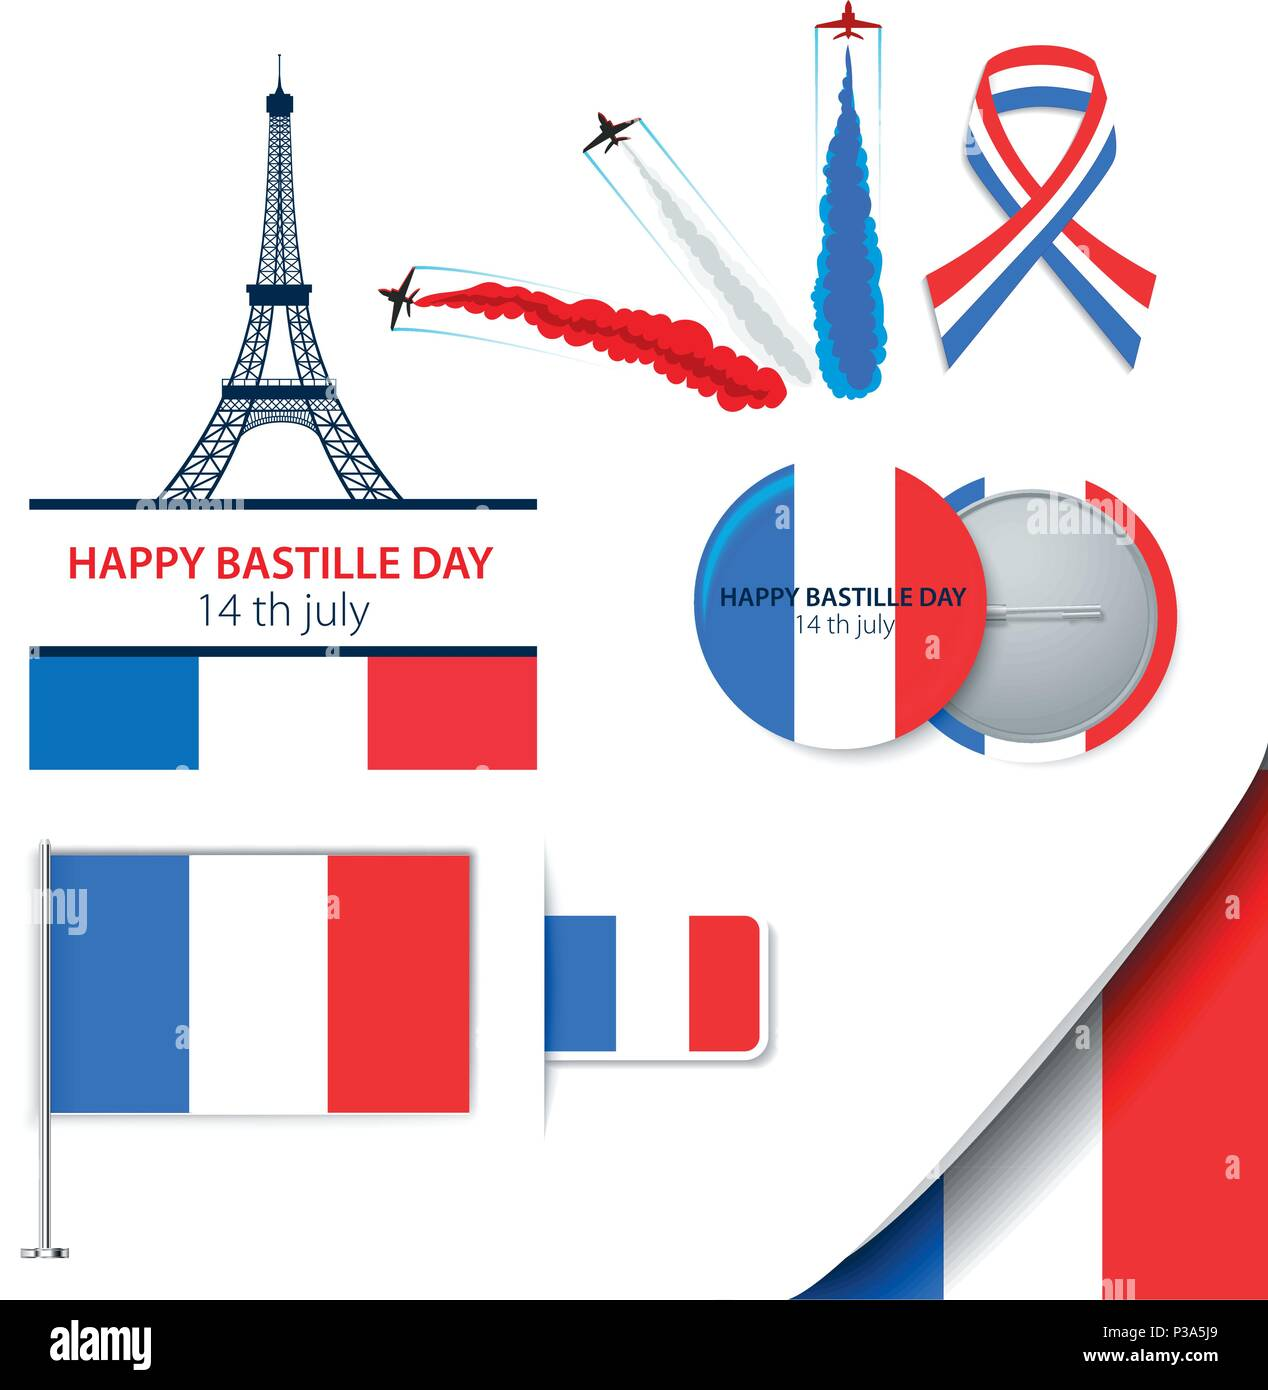 Greeting card design for the bastille day fourteen of july or greeting card design for the bastille day fourteen of july or another french holiday stylish vector modern illustration and design elements m4hsunfo